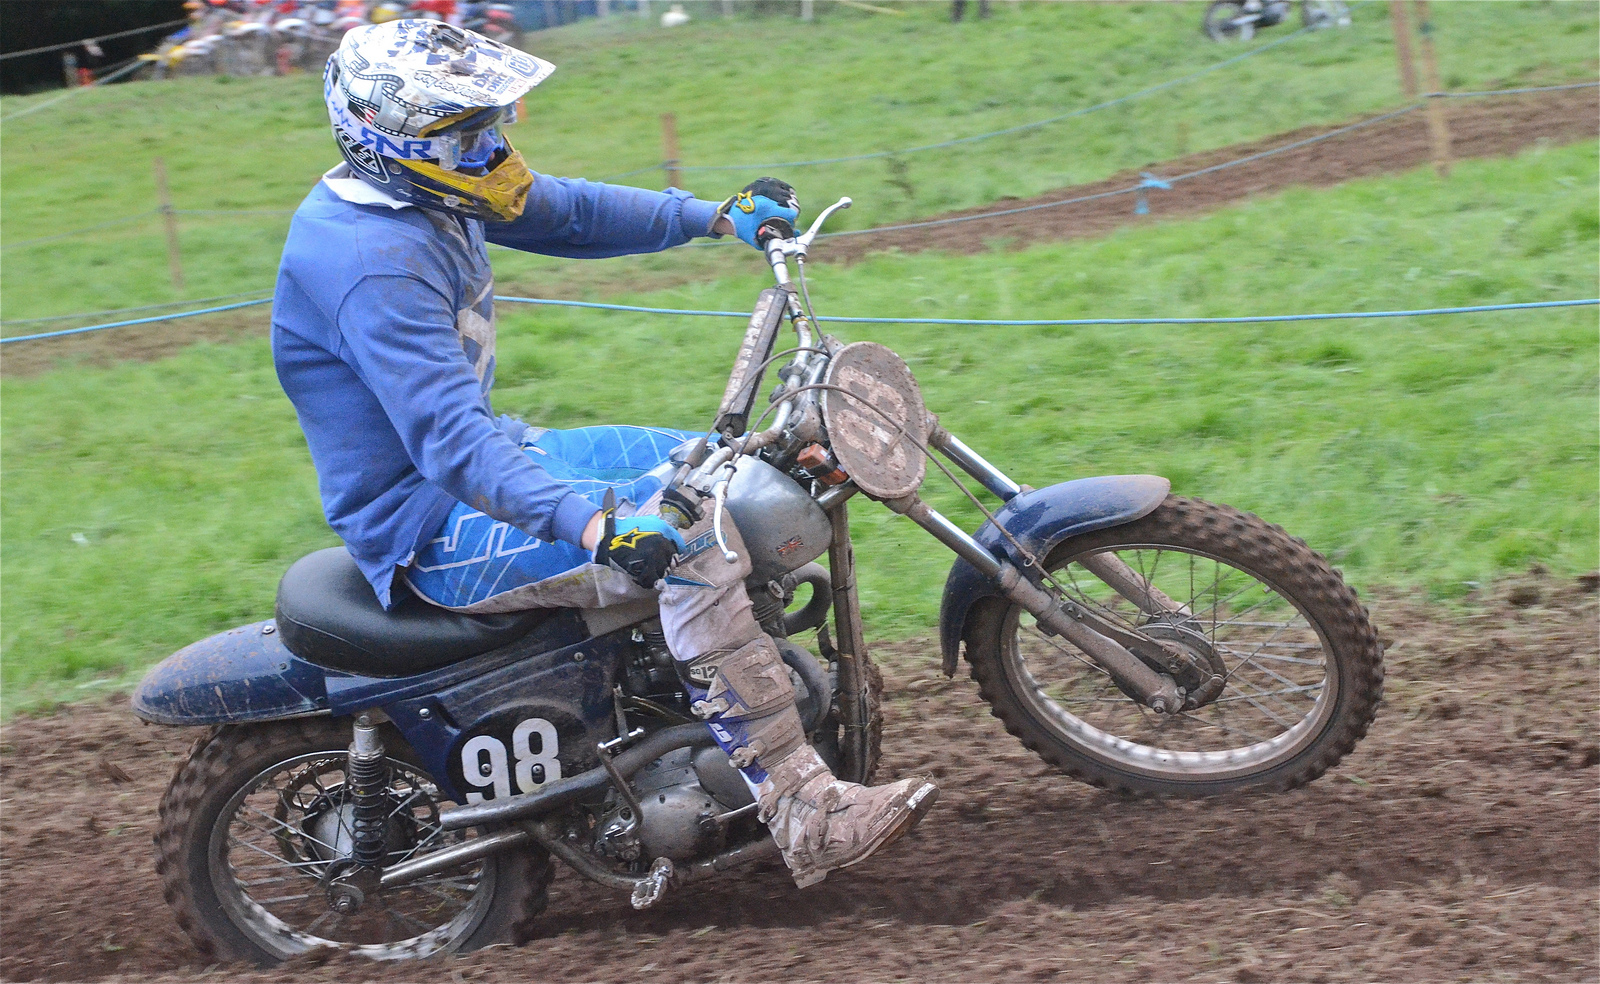 Llanthony Classic Scramble Photos September 2015 classicdirtbikerider.com..49